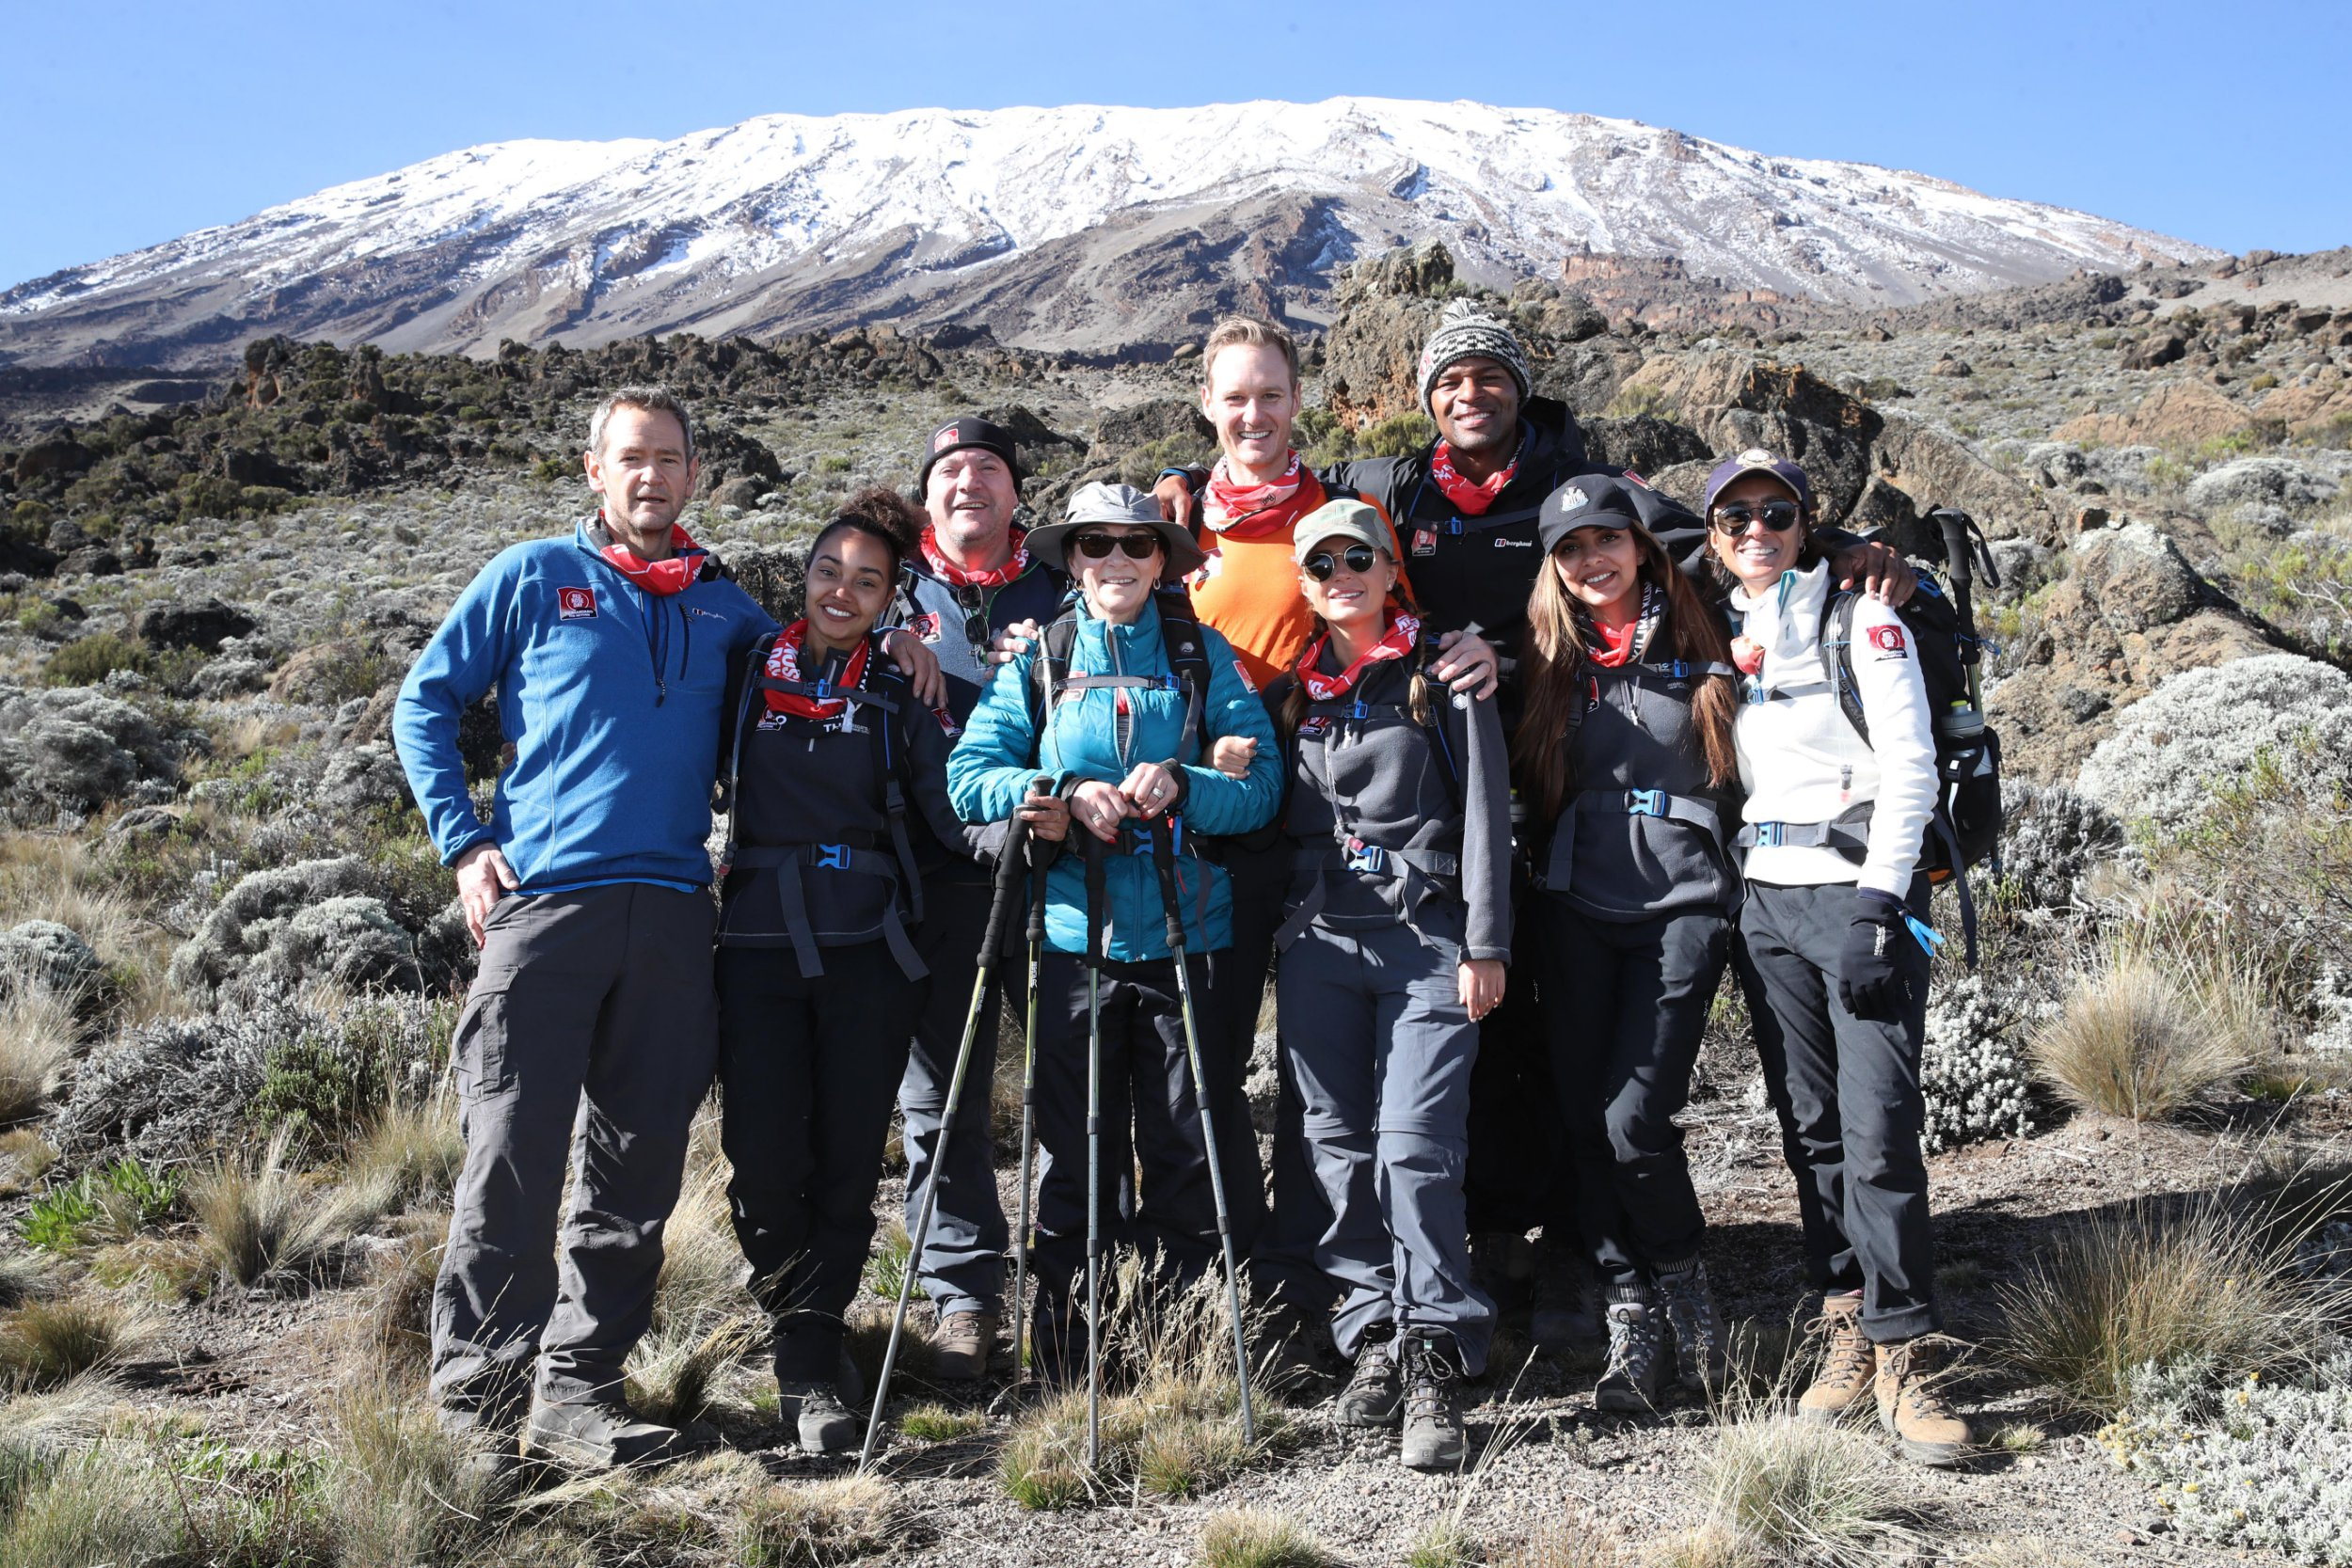 ***BESTPIX*** ARUSHA, TANZANIA - FEBRUARY 27: (STRICTLY EDITORIAL USE ONLY) Alexander Armstrong, Leigh-Anne Pinnock, Ed Balls, Shirley Ballas, Dan Walker, Dani Dyer, Osi Umenyiora, Jade Thirlwall and Anita Rani pose during day five of 'Kilimanjaro: The Return' for Red Nose Day on February 27, 2019 in Arusha, Tanzania, all to raise funds for Comic Relief supported projects in the UK and around the world. (Photo by Chris Jackson/Getty Images for Comic Relief)